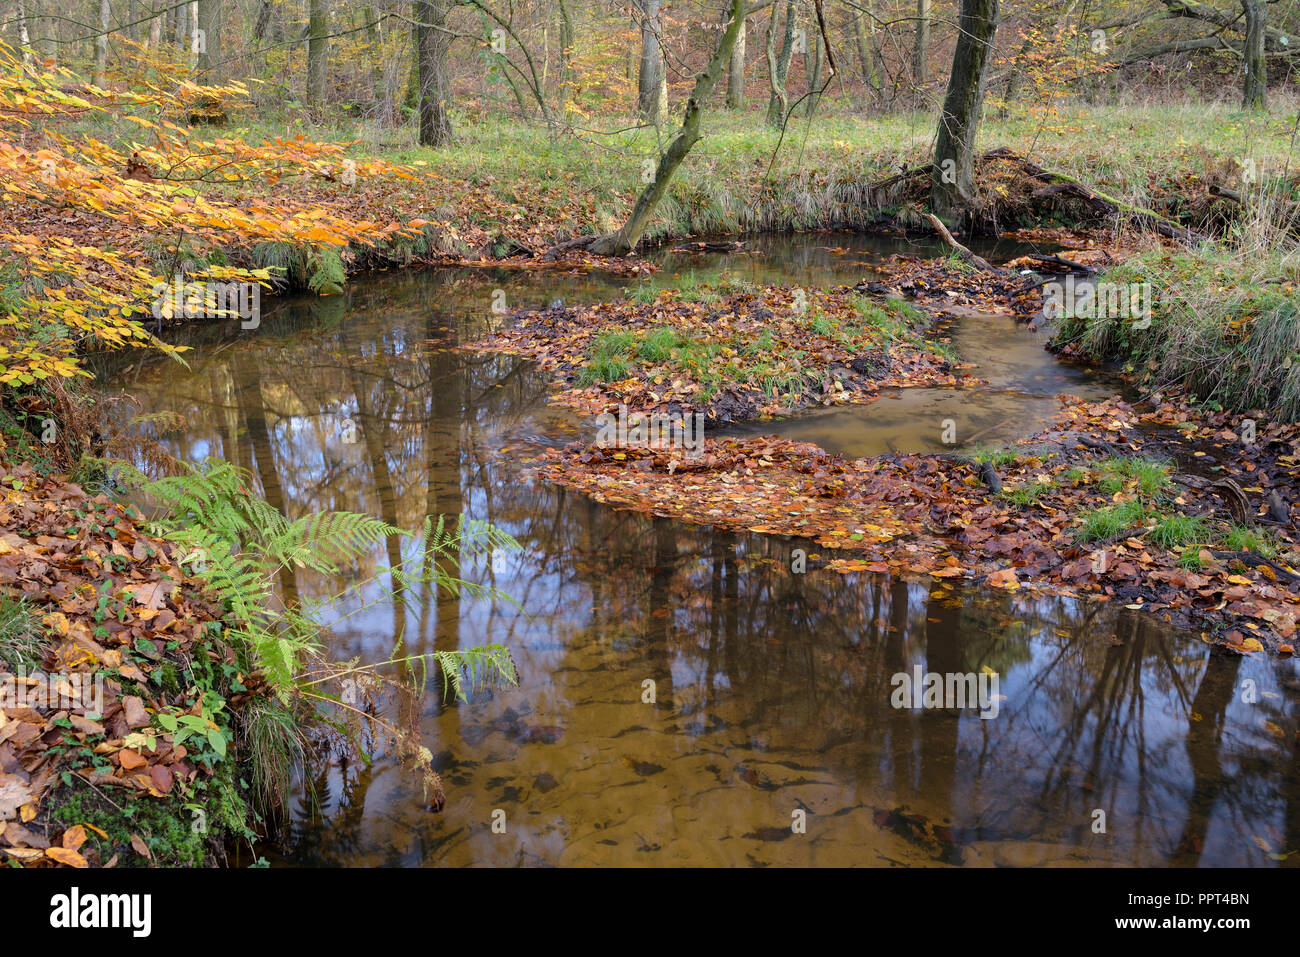 Rotbach, creek in beech forest, november, Oberhausen, Germany Stock Photo